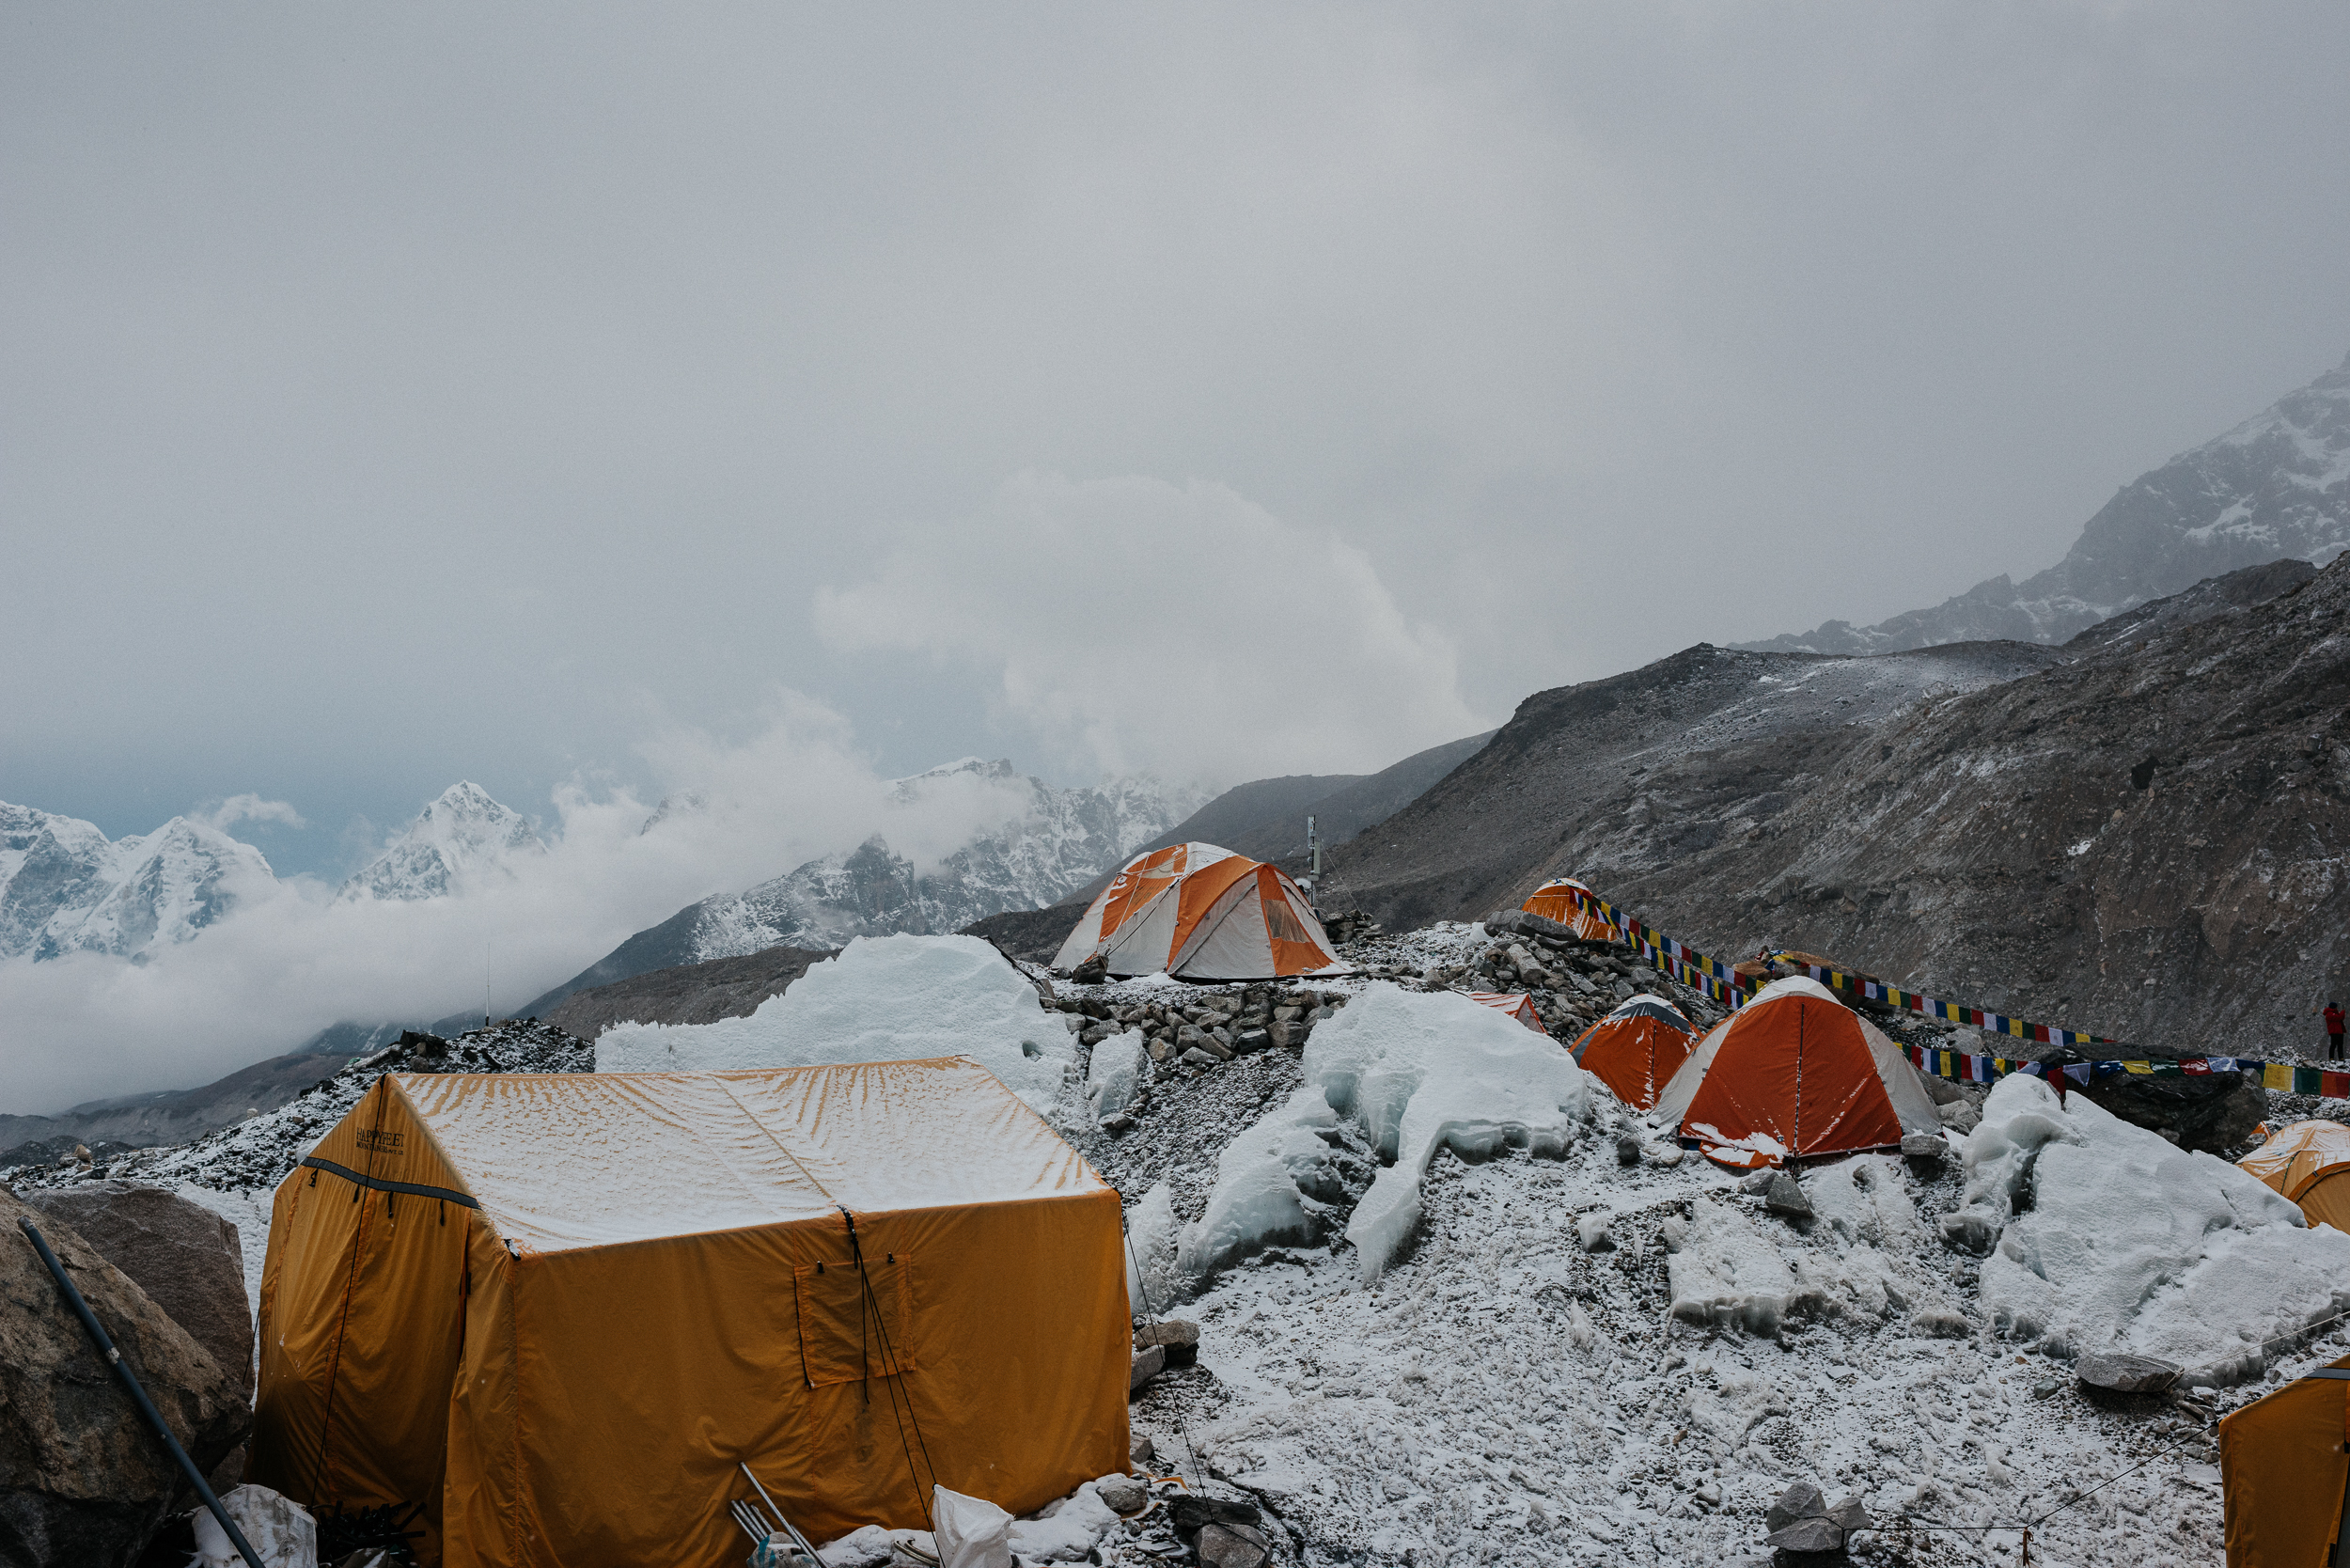 Nepal_EverestBaseCamp_2019_TaraShupe_Photography_DSC_4264.jpg